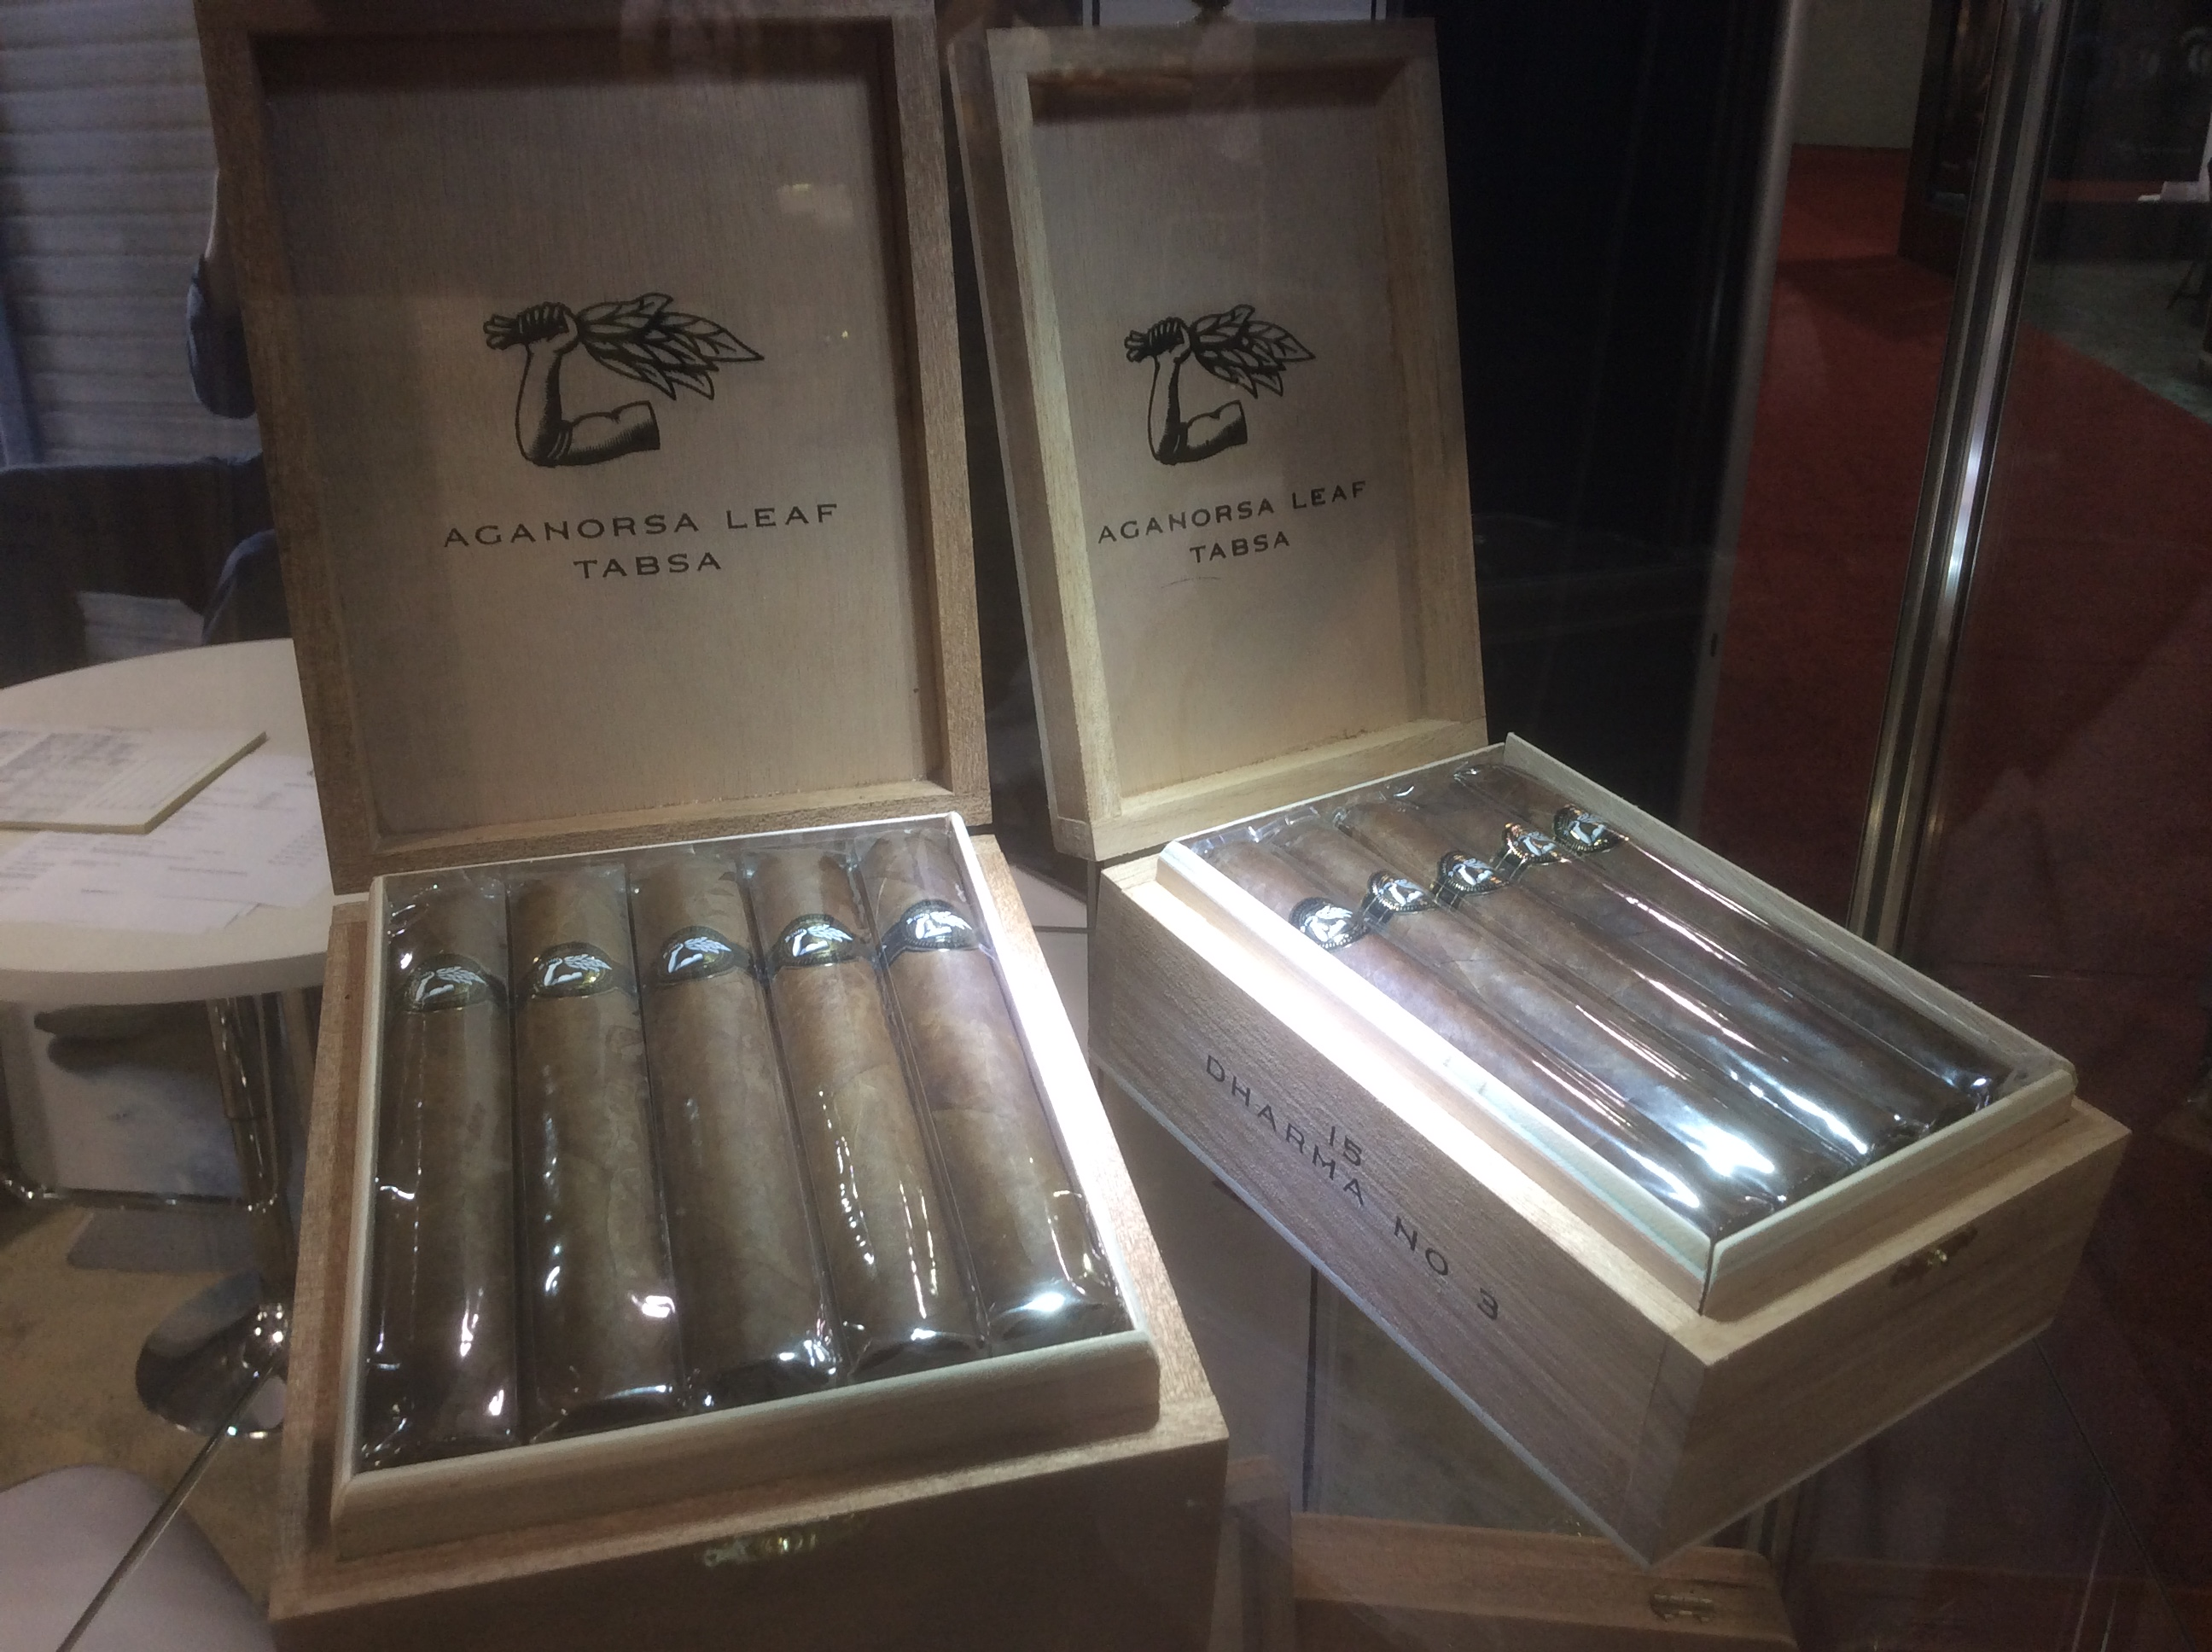 Cigar News: Casa Fernandez Introduces Aganorsa Leaf TABSA at 2016 IPCPR